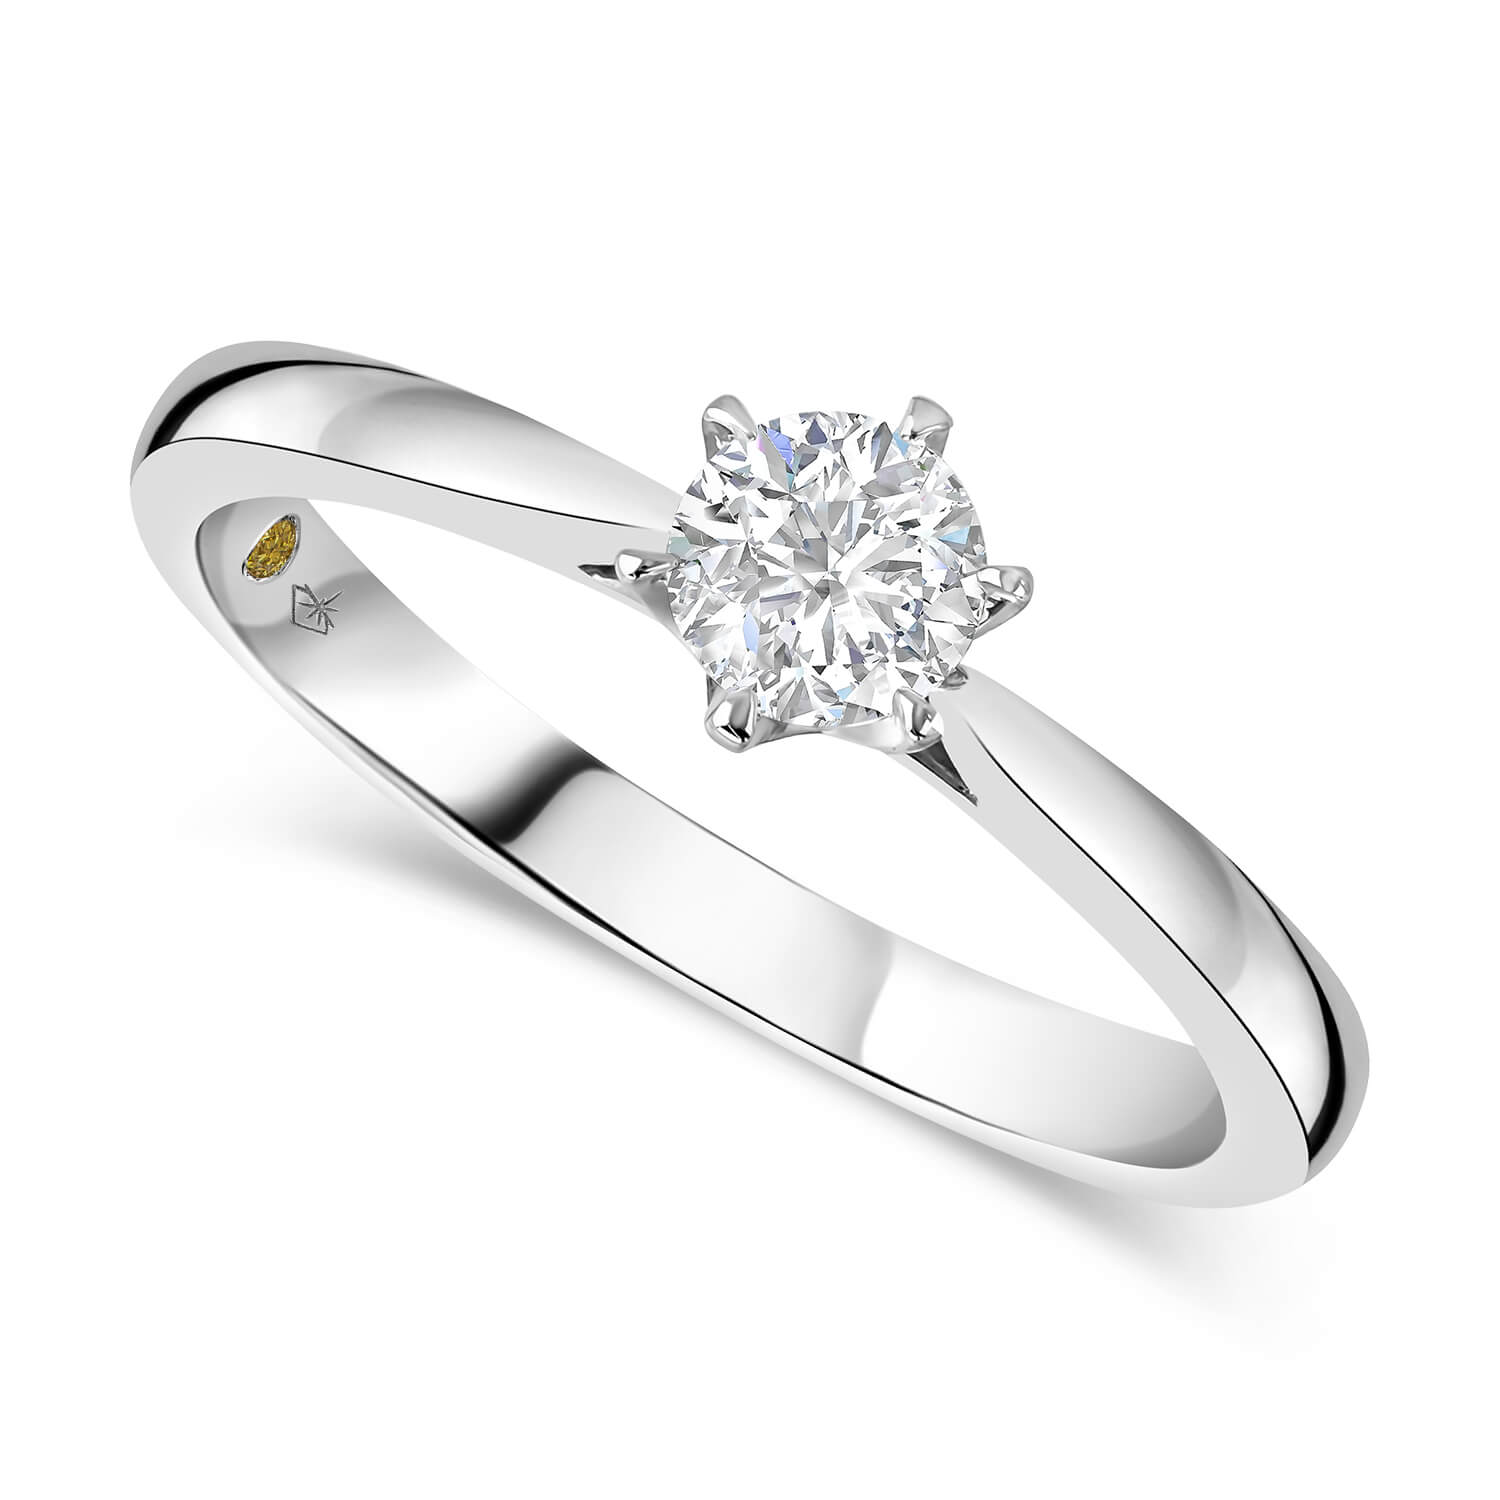 Northern Star 18ct White Gold 0.50ct Diamond Six Claw Solitaire Ring